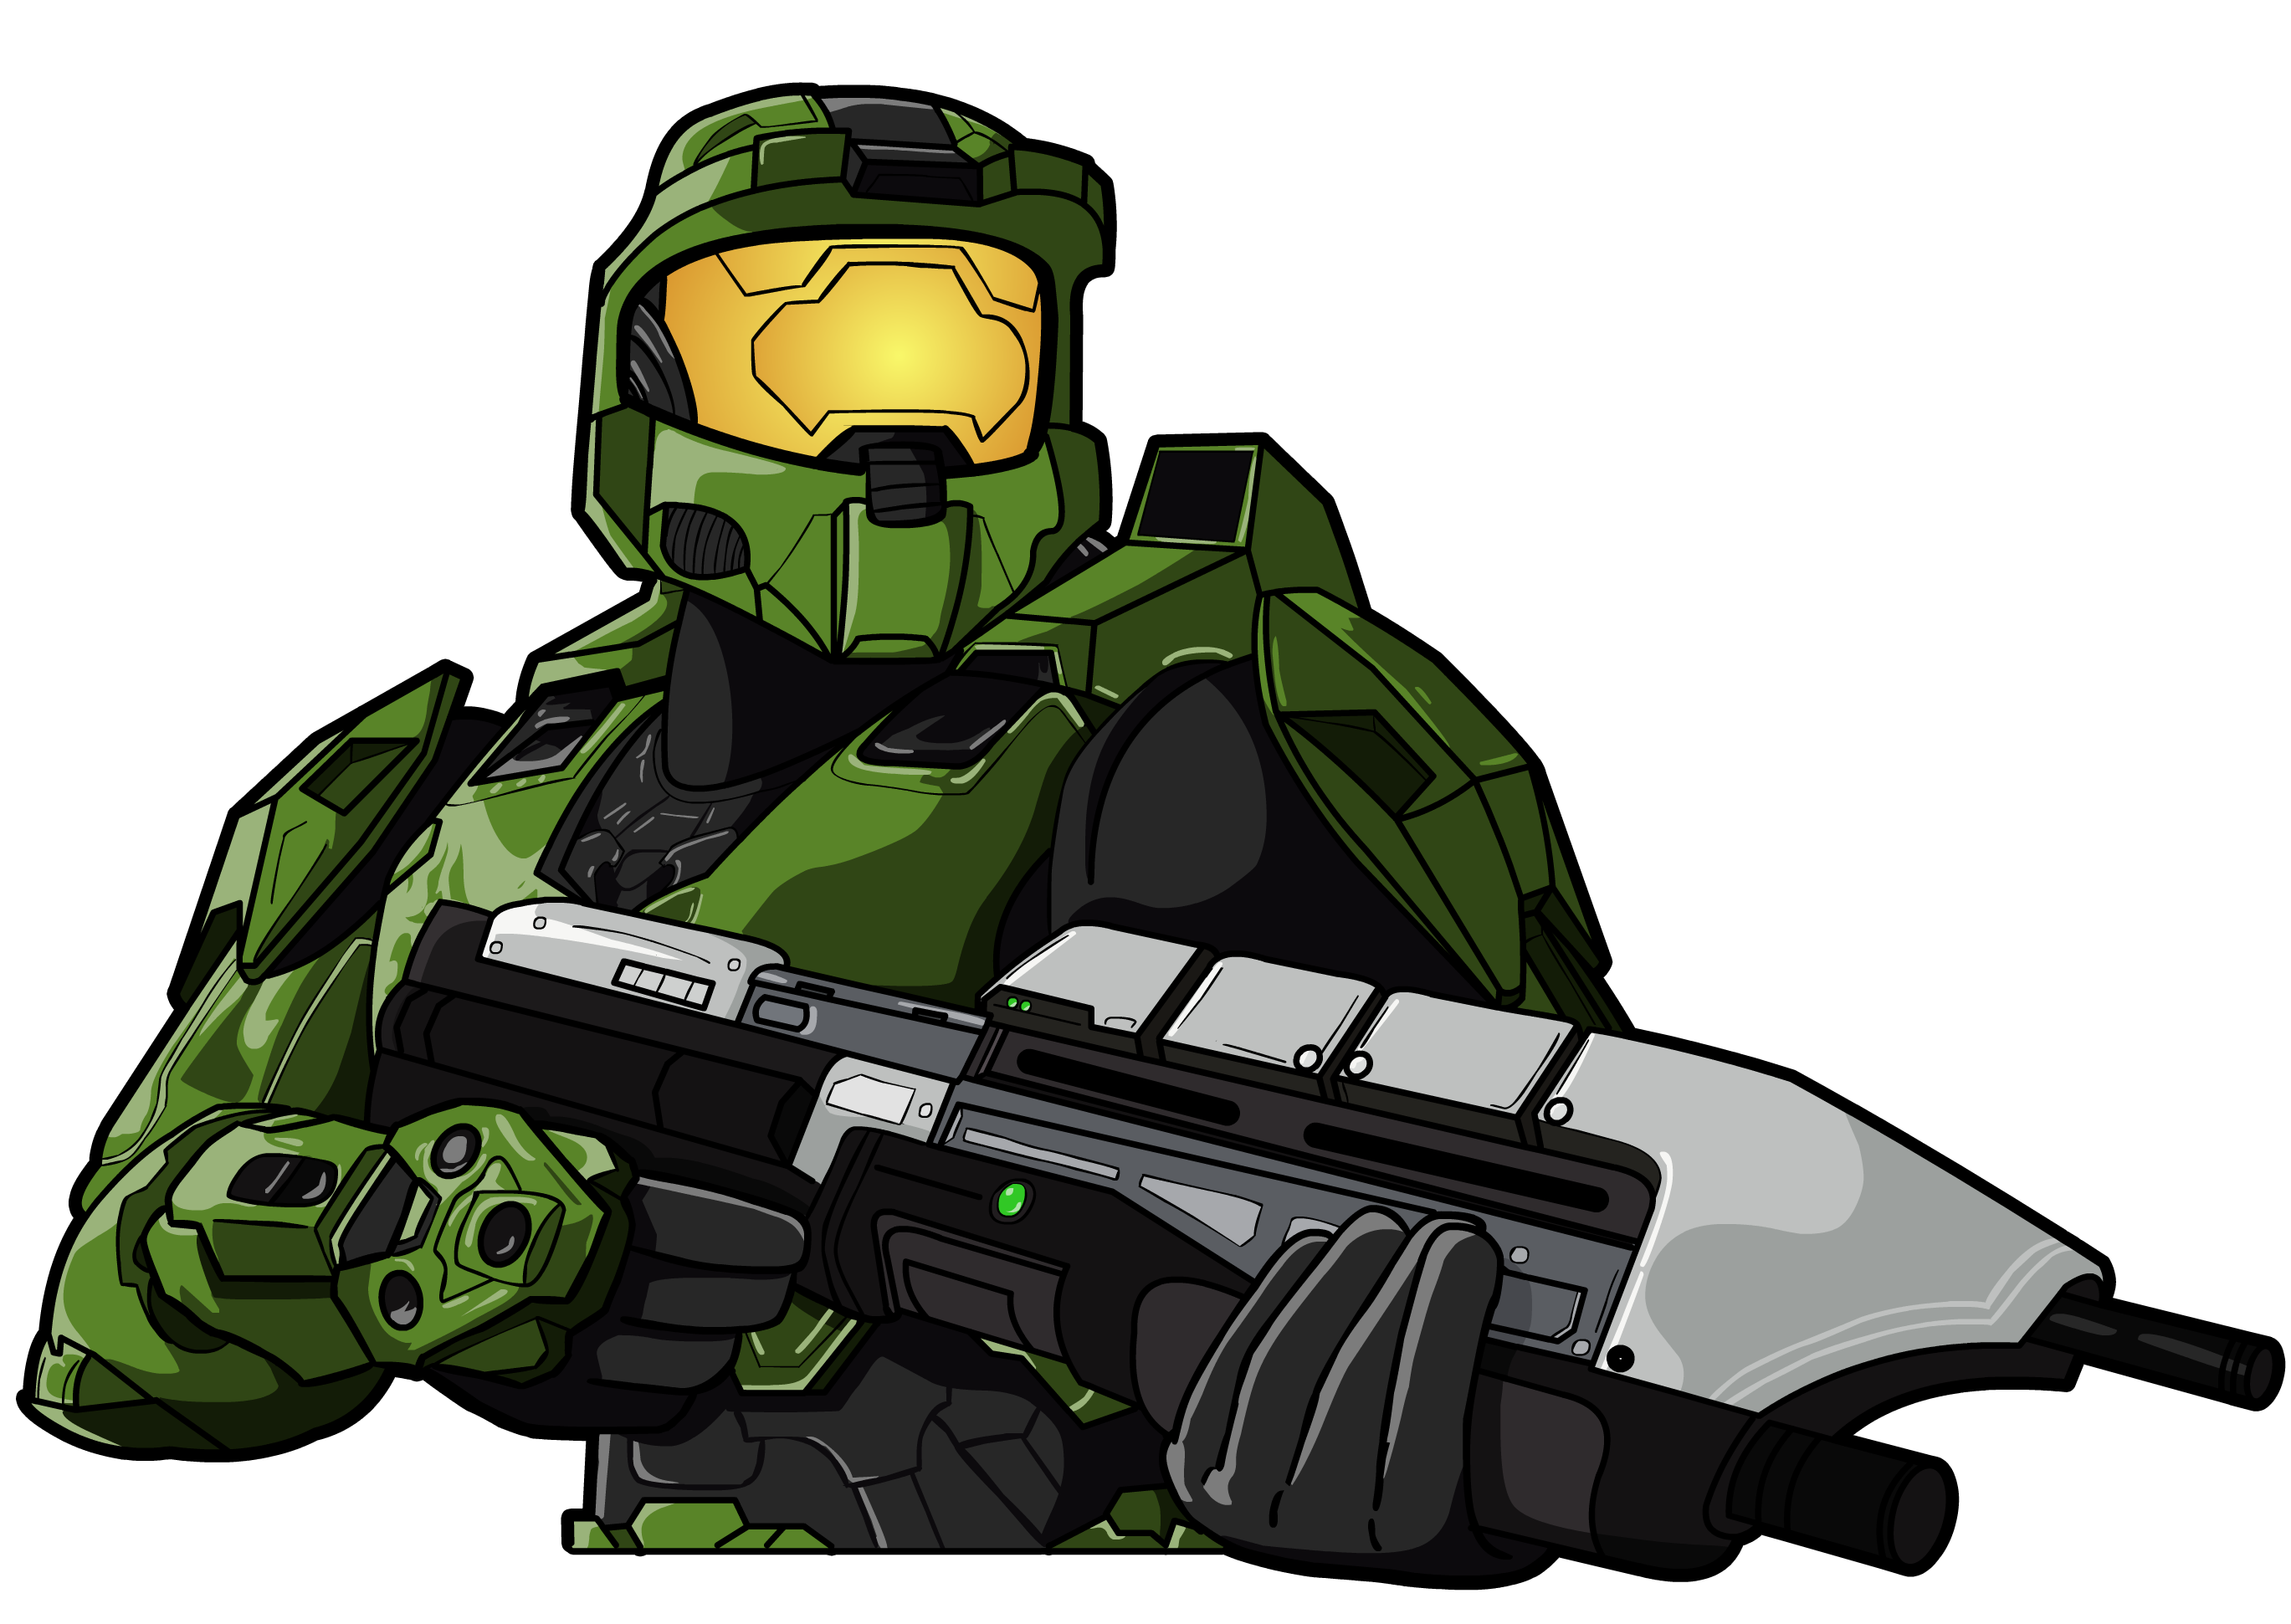 Halo spartan png. Assault reach the master